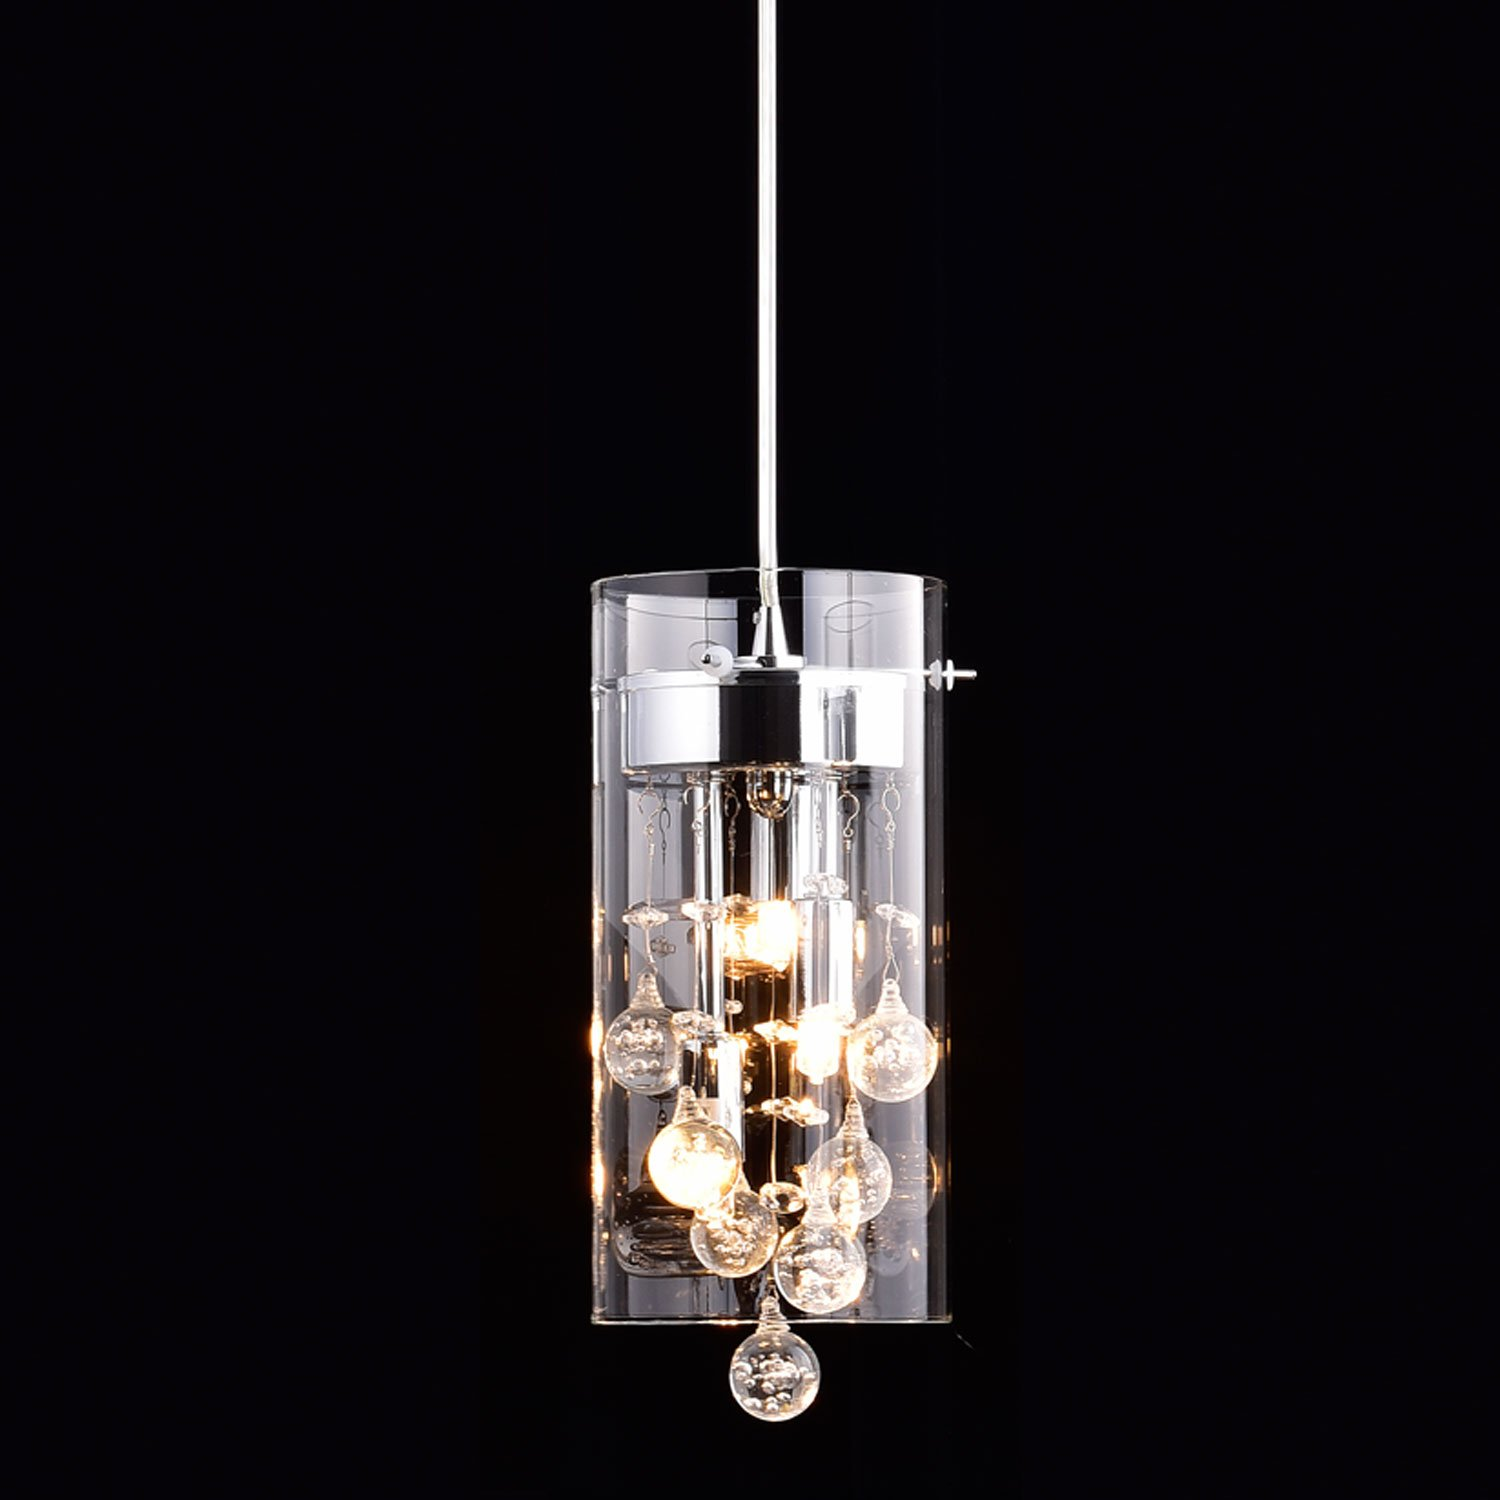 Claxy ecopower lighting glass crystal pendant lighting modern claxy ecopower lighting glass crystal pendant lighting modern chandelier for kitchen amazon aloadofball